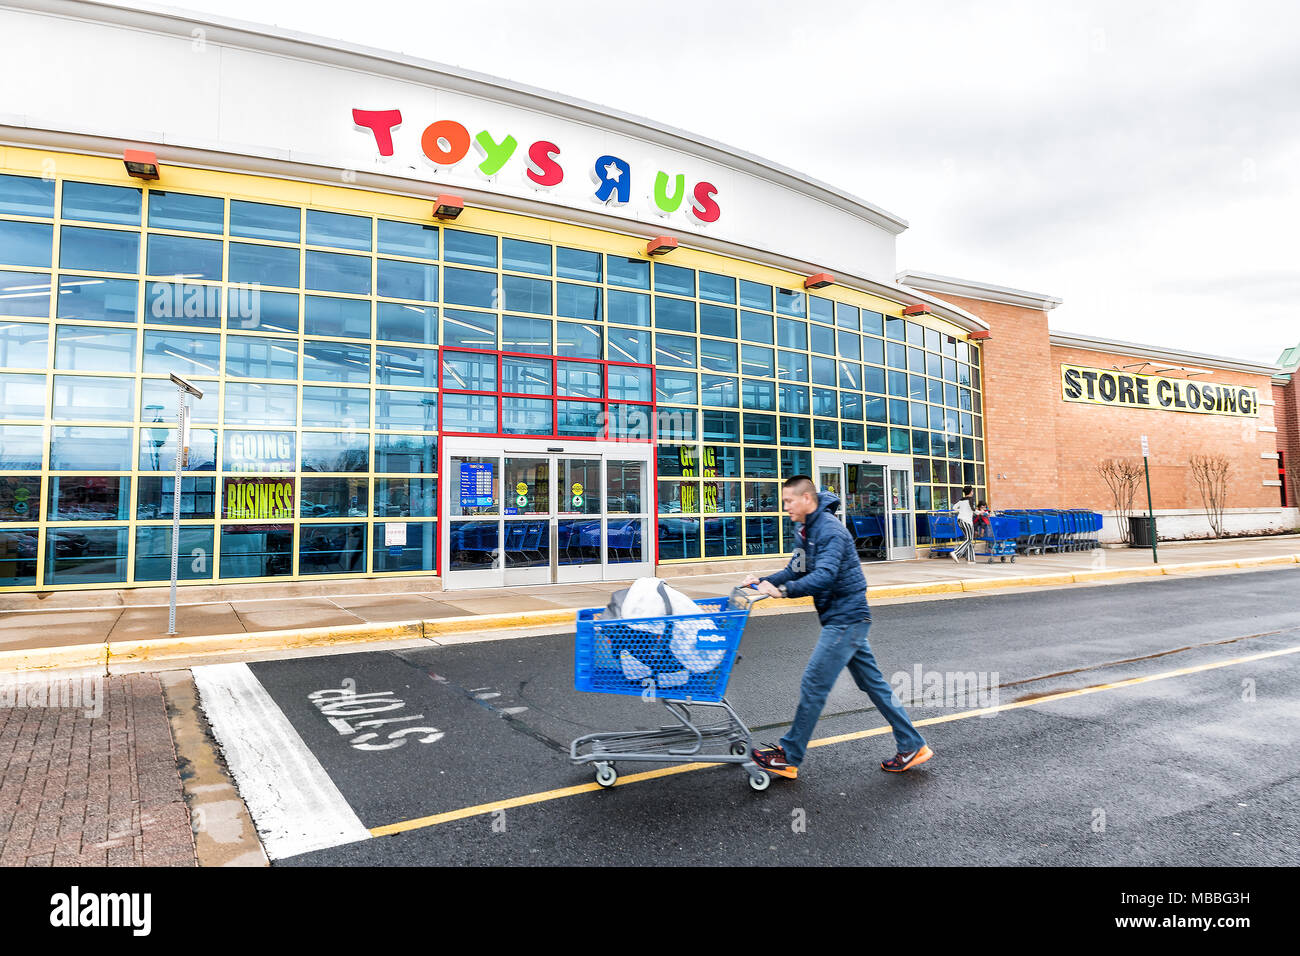 marvelous Toys R Us Sterling Part - 8: Sterling, USA - April 4, 2018: Toys R US store in Fairfax County, Virginia  for children shop exterior entrance with sign, logo, doors, closing going o